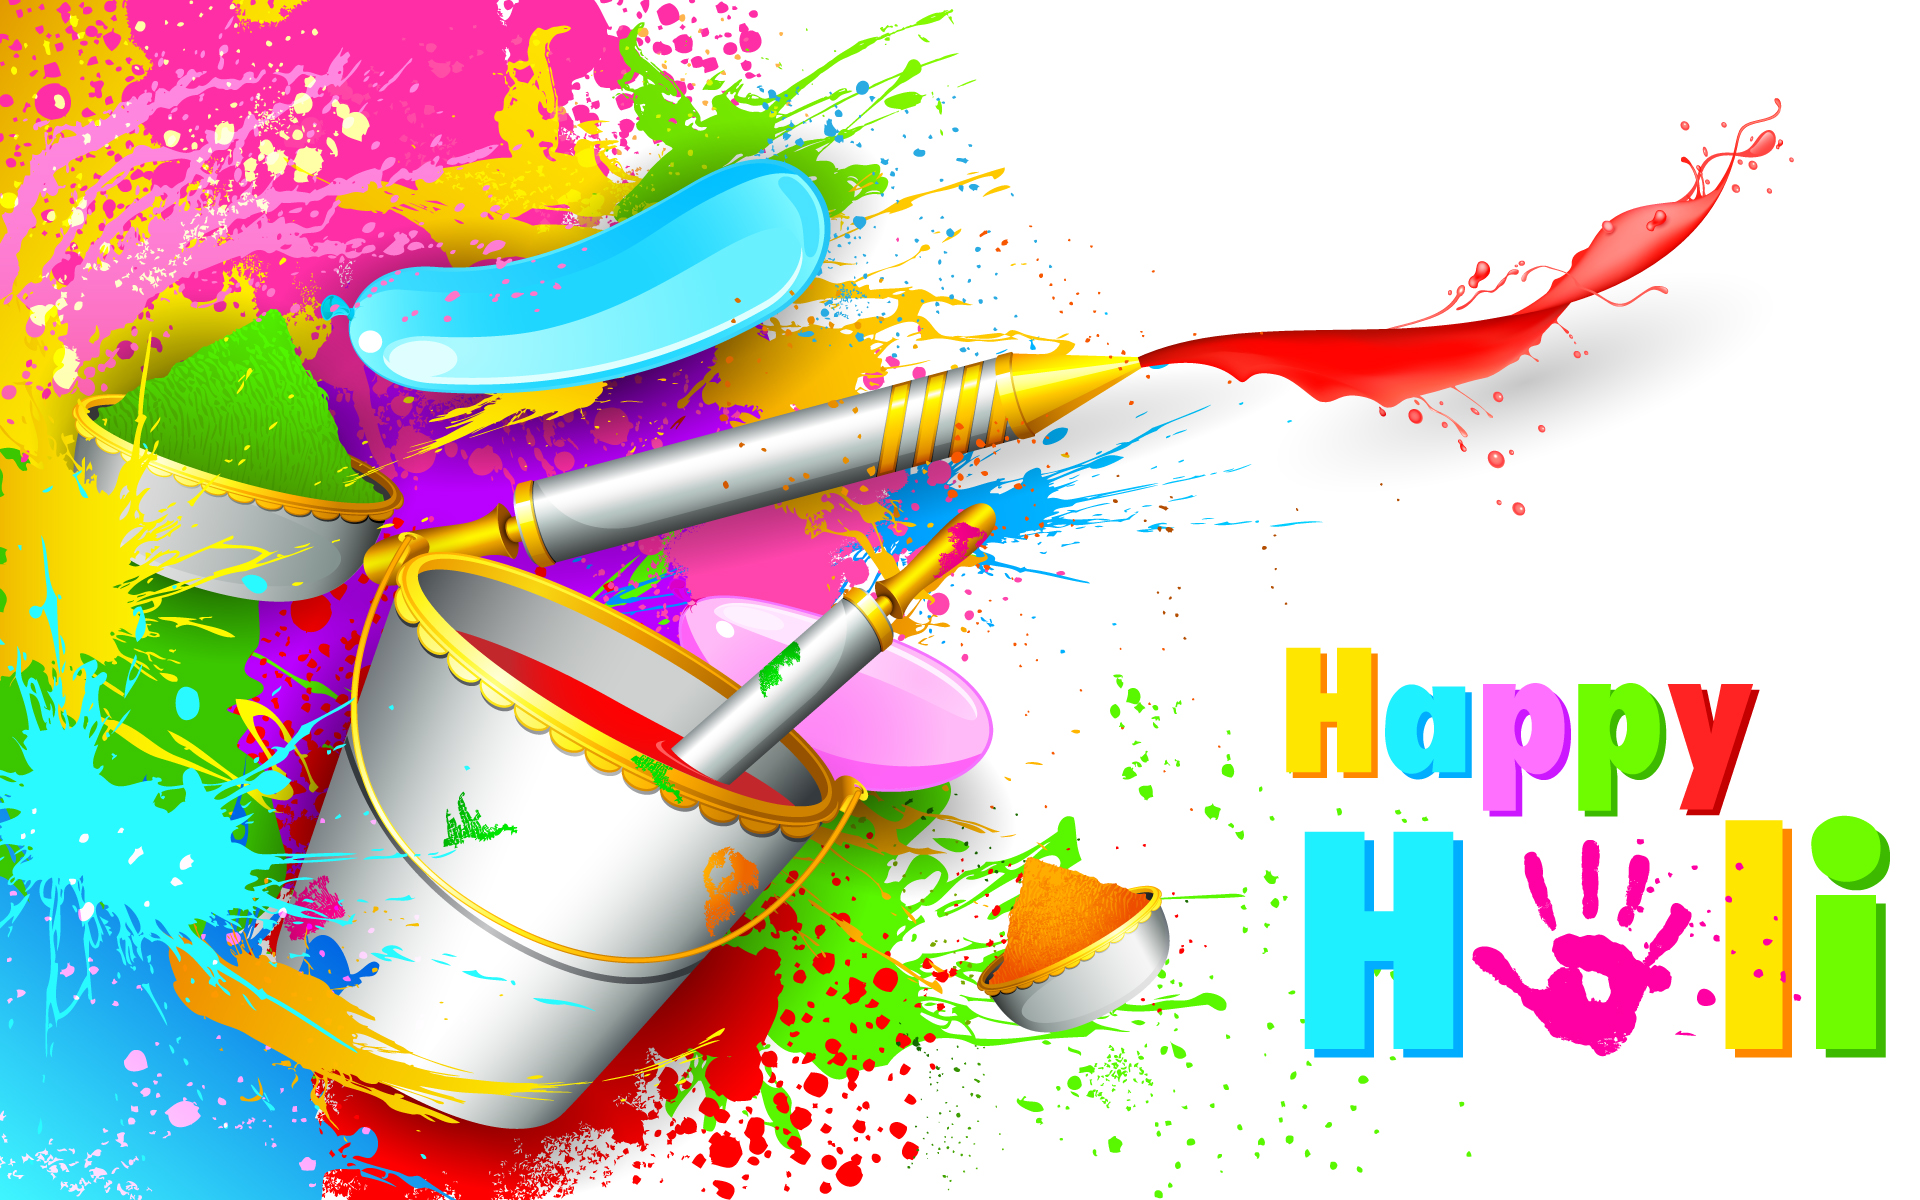 Happy Holi 2017 Wallpaper free download